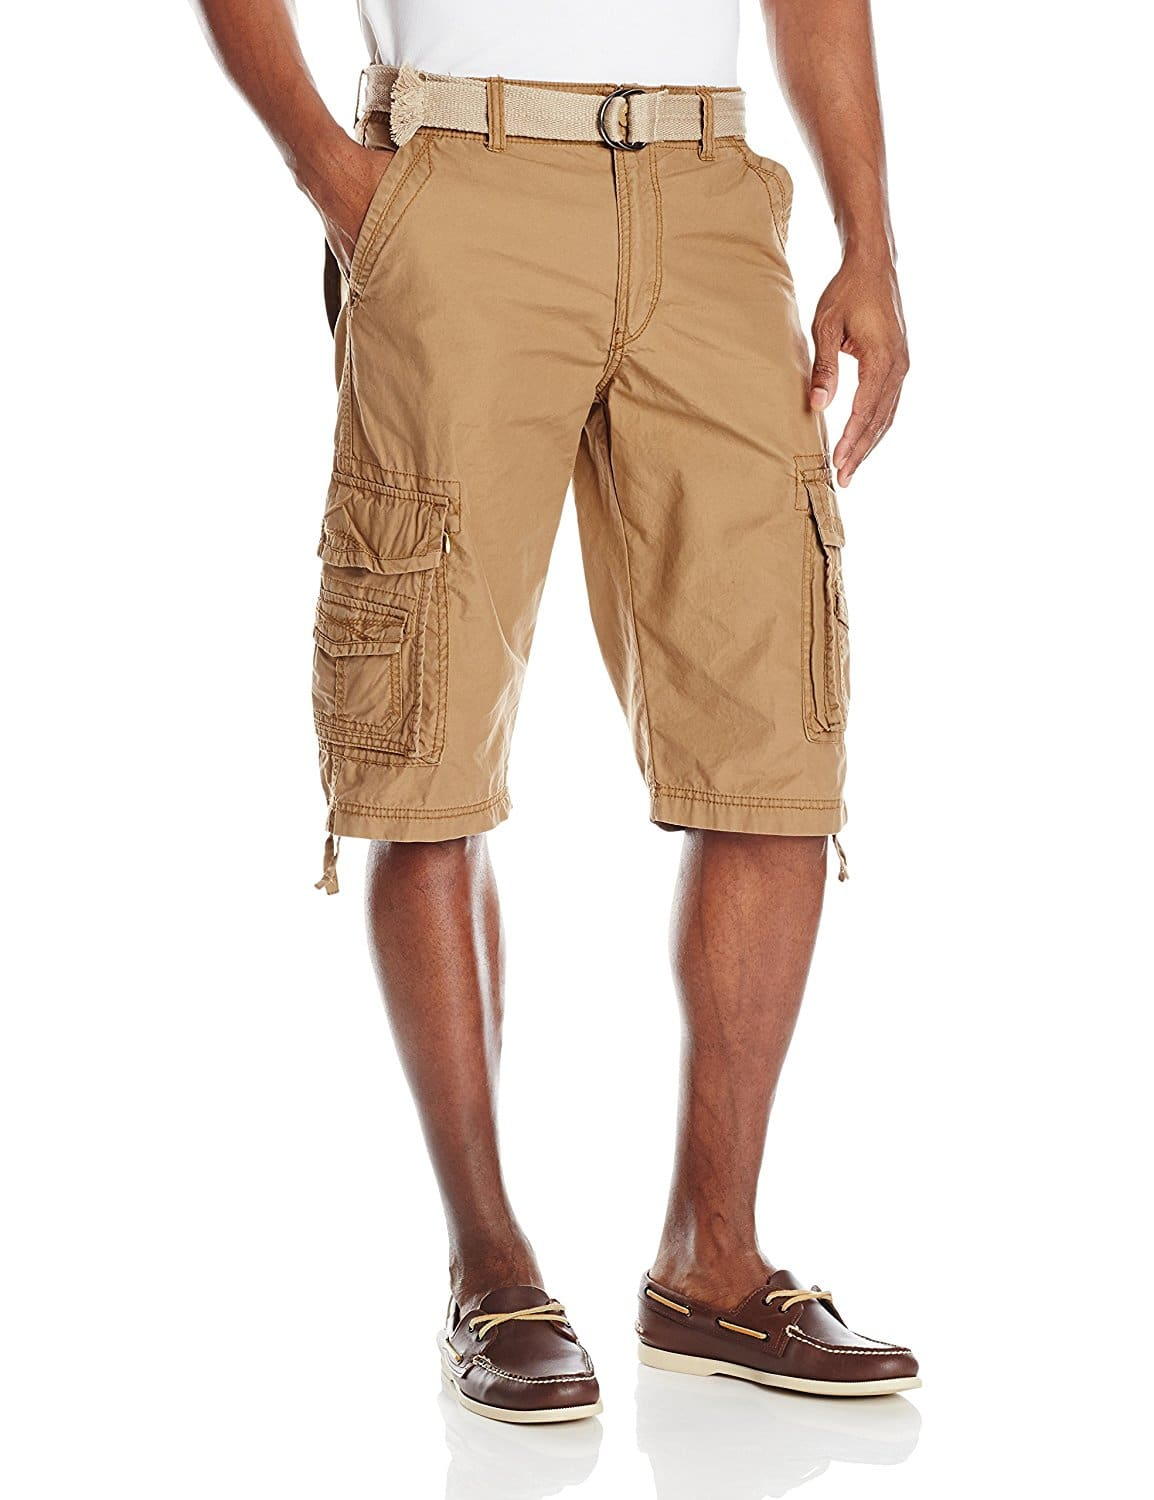 Amazon - Unionbay Men's Cordova Belted Messenger Cargo Short - Field Color - $7.82 - Size 50